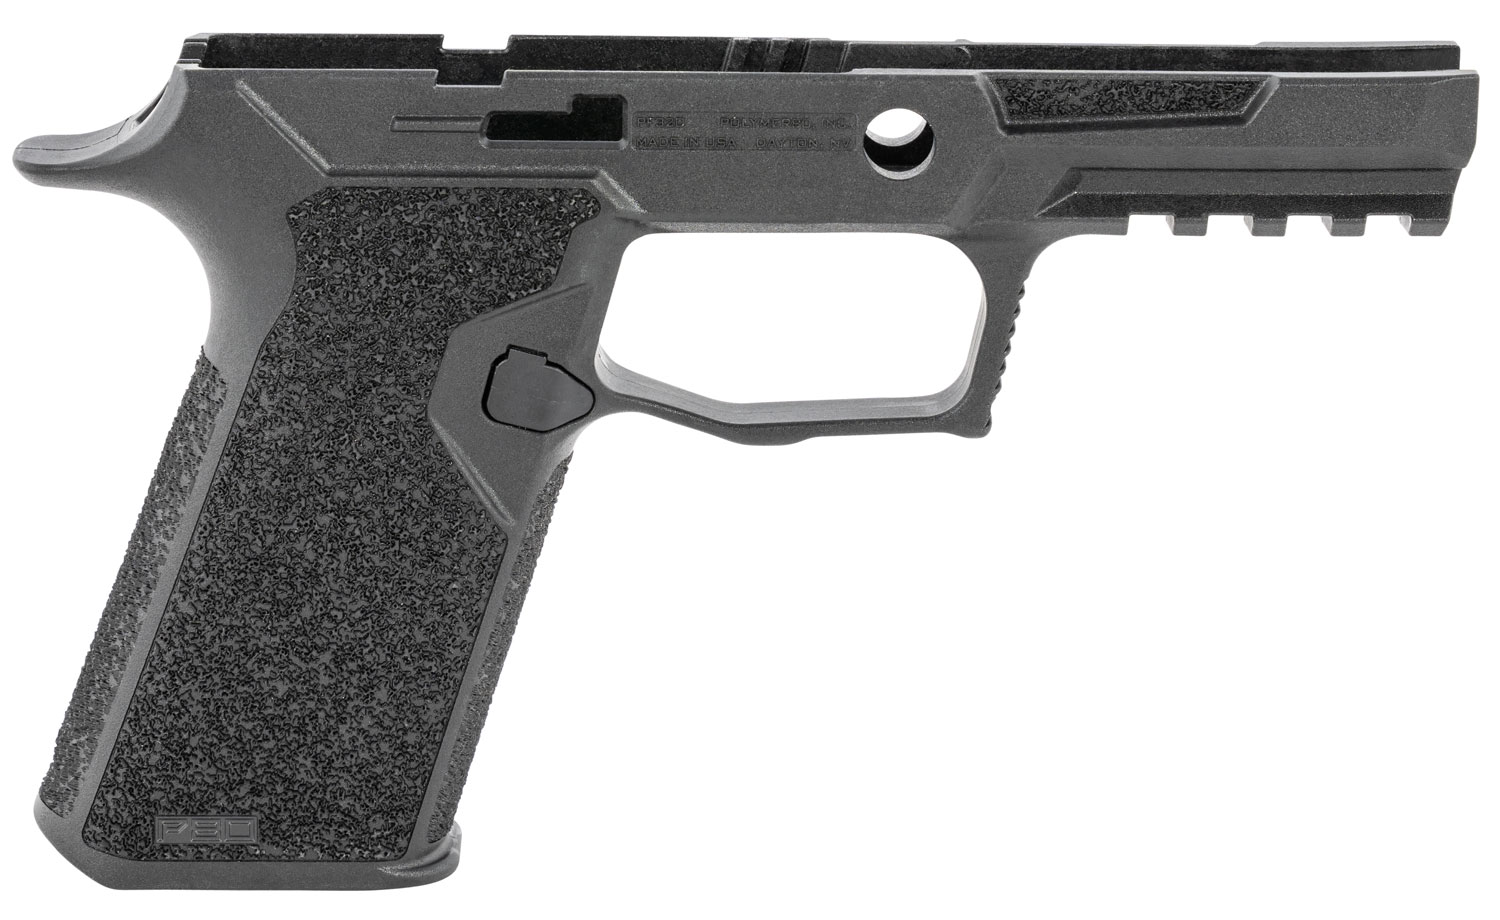 Polymer80 PF320-BLK PF320 Grip Module Kit Sig P320 Full, Carry/230 X5 Full, Carry/230 VTac Polymer Black